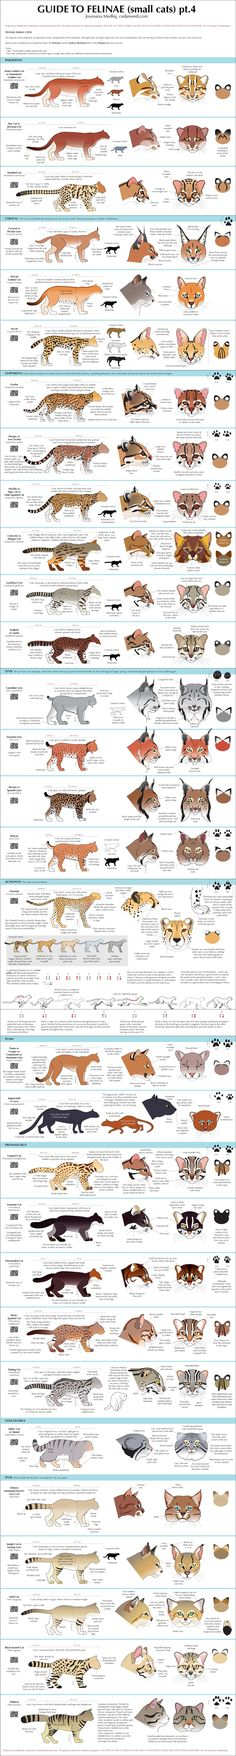 So many types of wild cats around the world! http://www.refugechatsverdun.com/